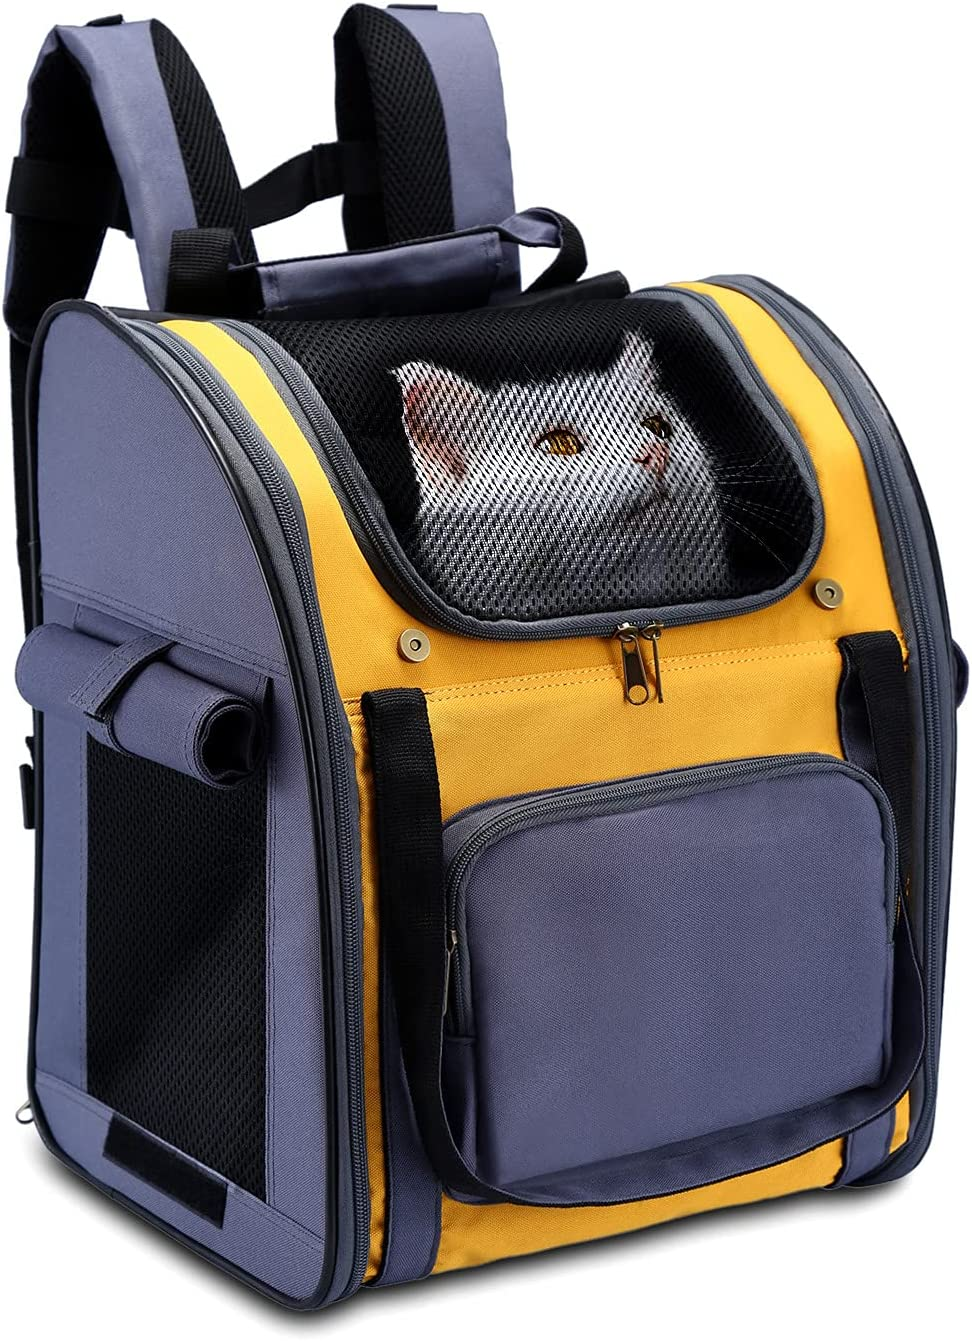 Pettom Dog Carrier Backpack Cat Travel Bag Backpa Puppy Foldable Bombing free shipping Louisville-Jefferson County Mall